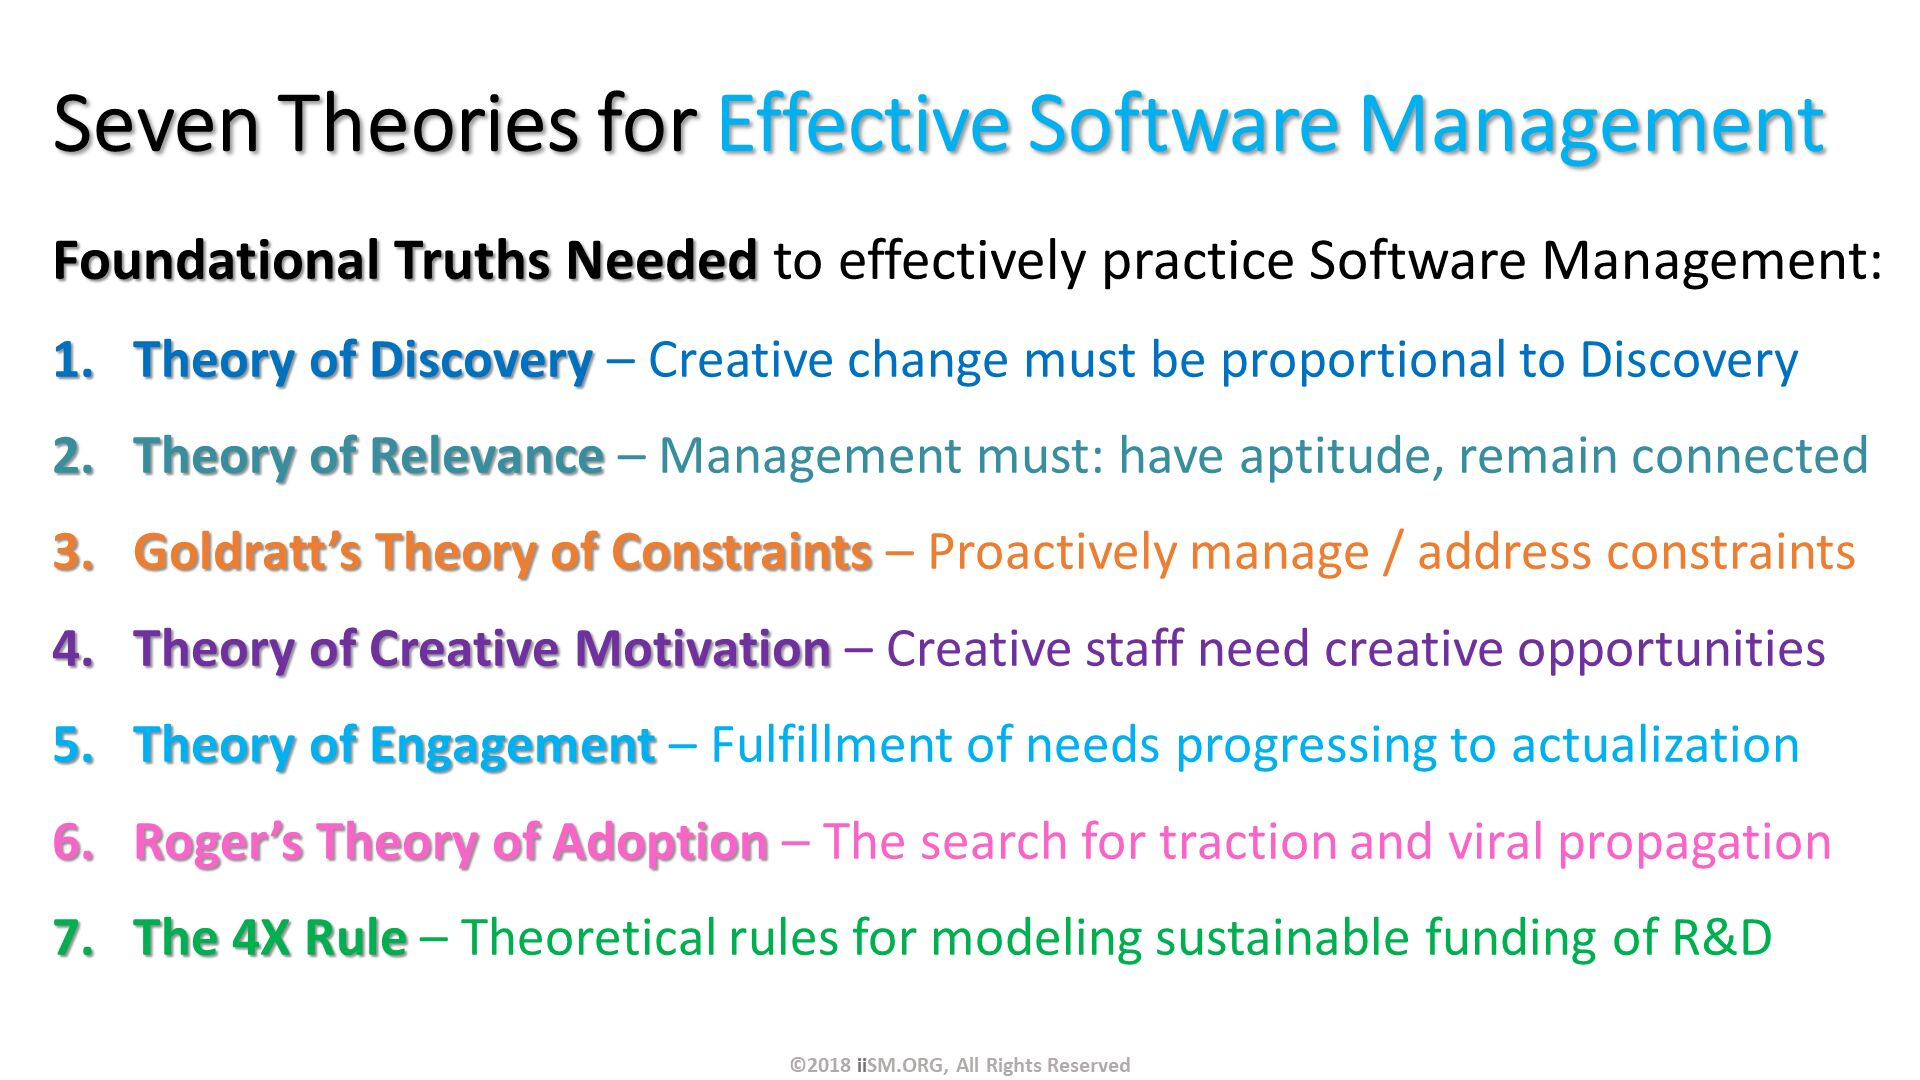 Seven Theories for Effective Software Management. Foundational Truths Needed to effectively practice Software Management: Theory of Discovery – Creative change must be proportional to Discovery Theory of Relevance – Management must: have aptitude, remain connected Goldratt's Theory of Constraints – Proactively manage / address constraints Theory of Creative Motivation – Creative staff need creative opportunities Theory of Engagement – Fulfillment of needs progressing to actualization Roger's Theory of Adoption – The search for traction and viral propagation  The 4X Rule – Theoretical rules for modeling sustainable funding of R&D. ©2018 iiSM.ORG, All Rights Reserved.